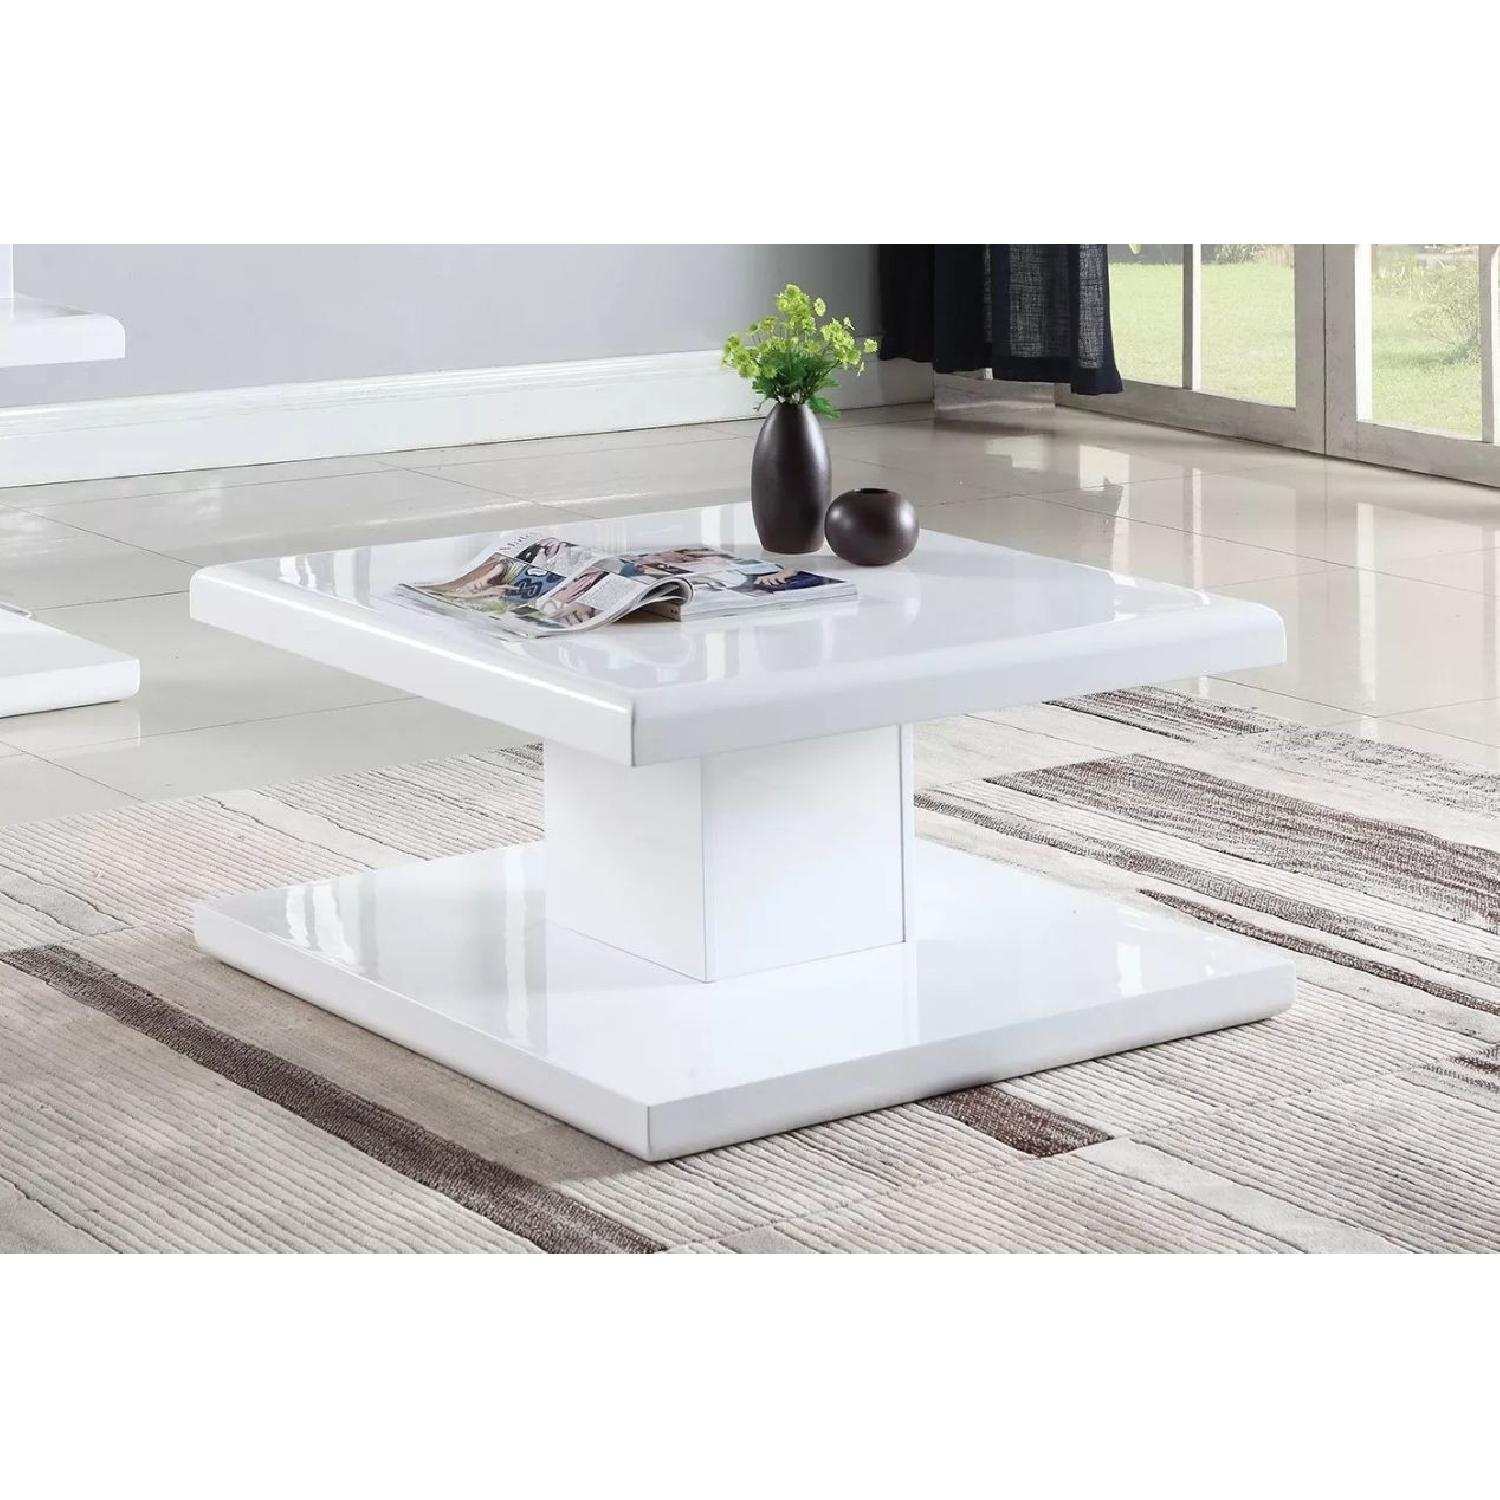 Modern Glossy White Coffee Table - image-2